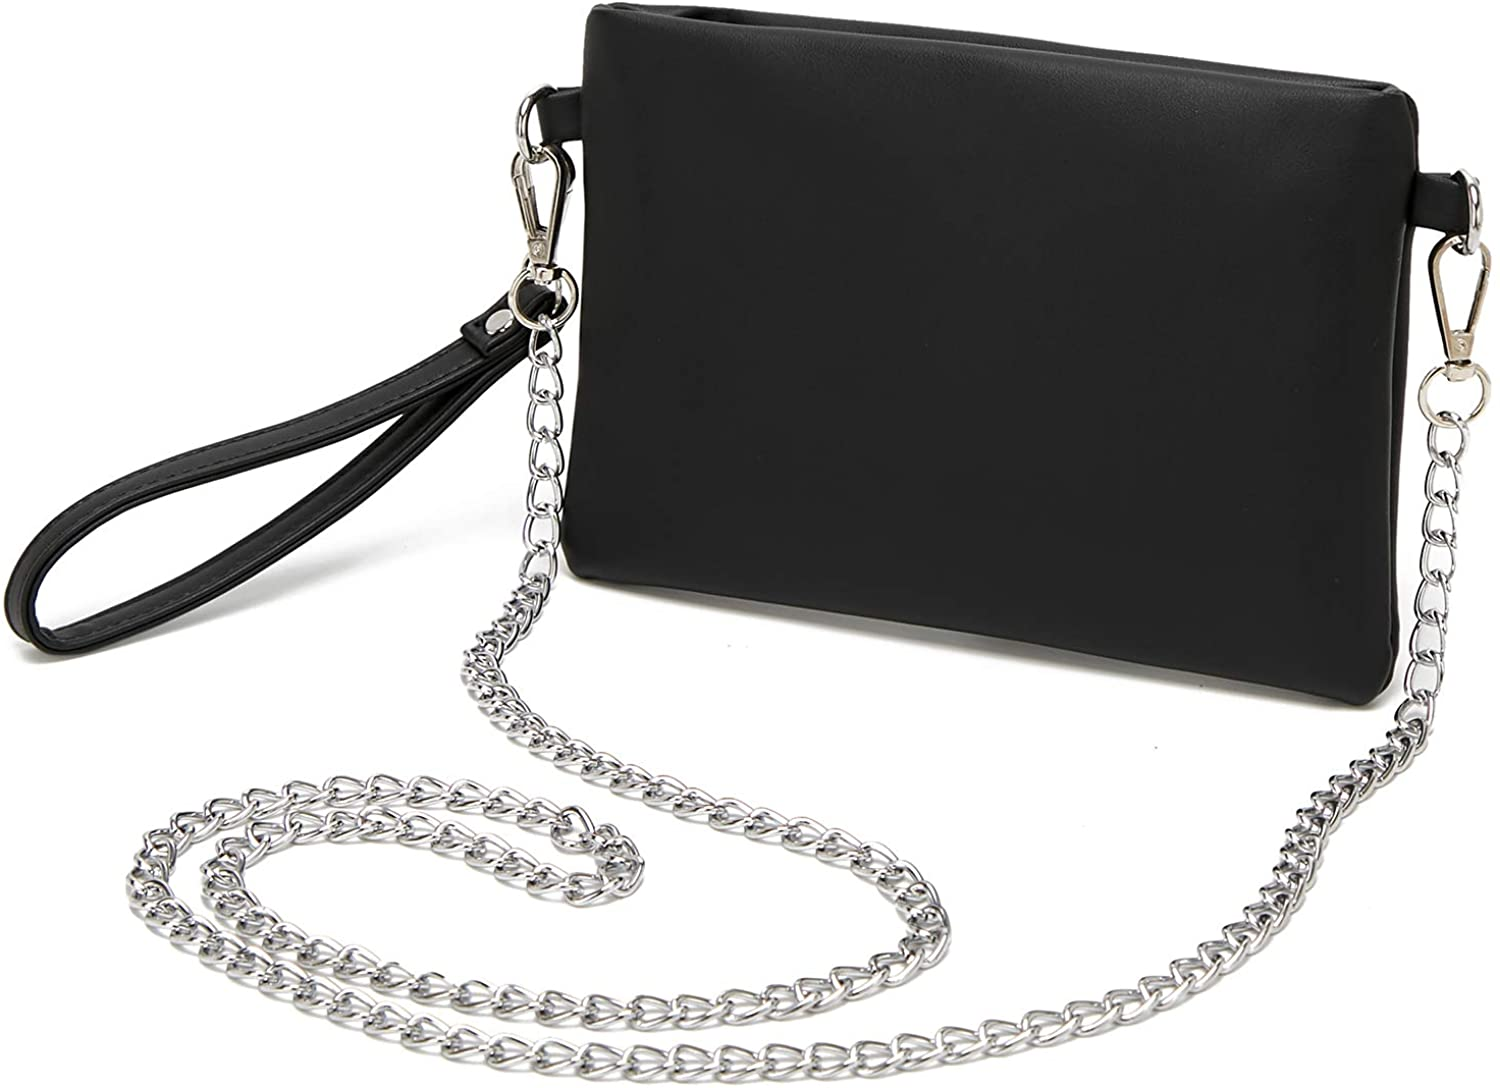 Forestfish PU Leather Wristlet Clutch Purse Crossbody Shoulder Bag Evening Bags with Chain Wristlet Strap for Women Girls